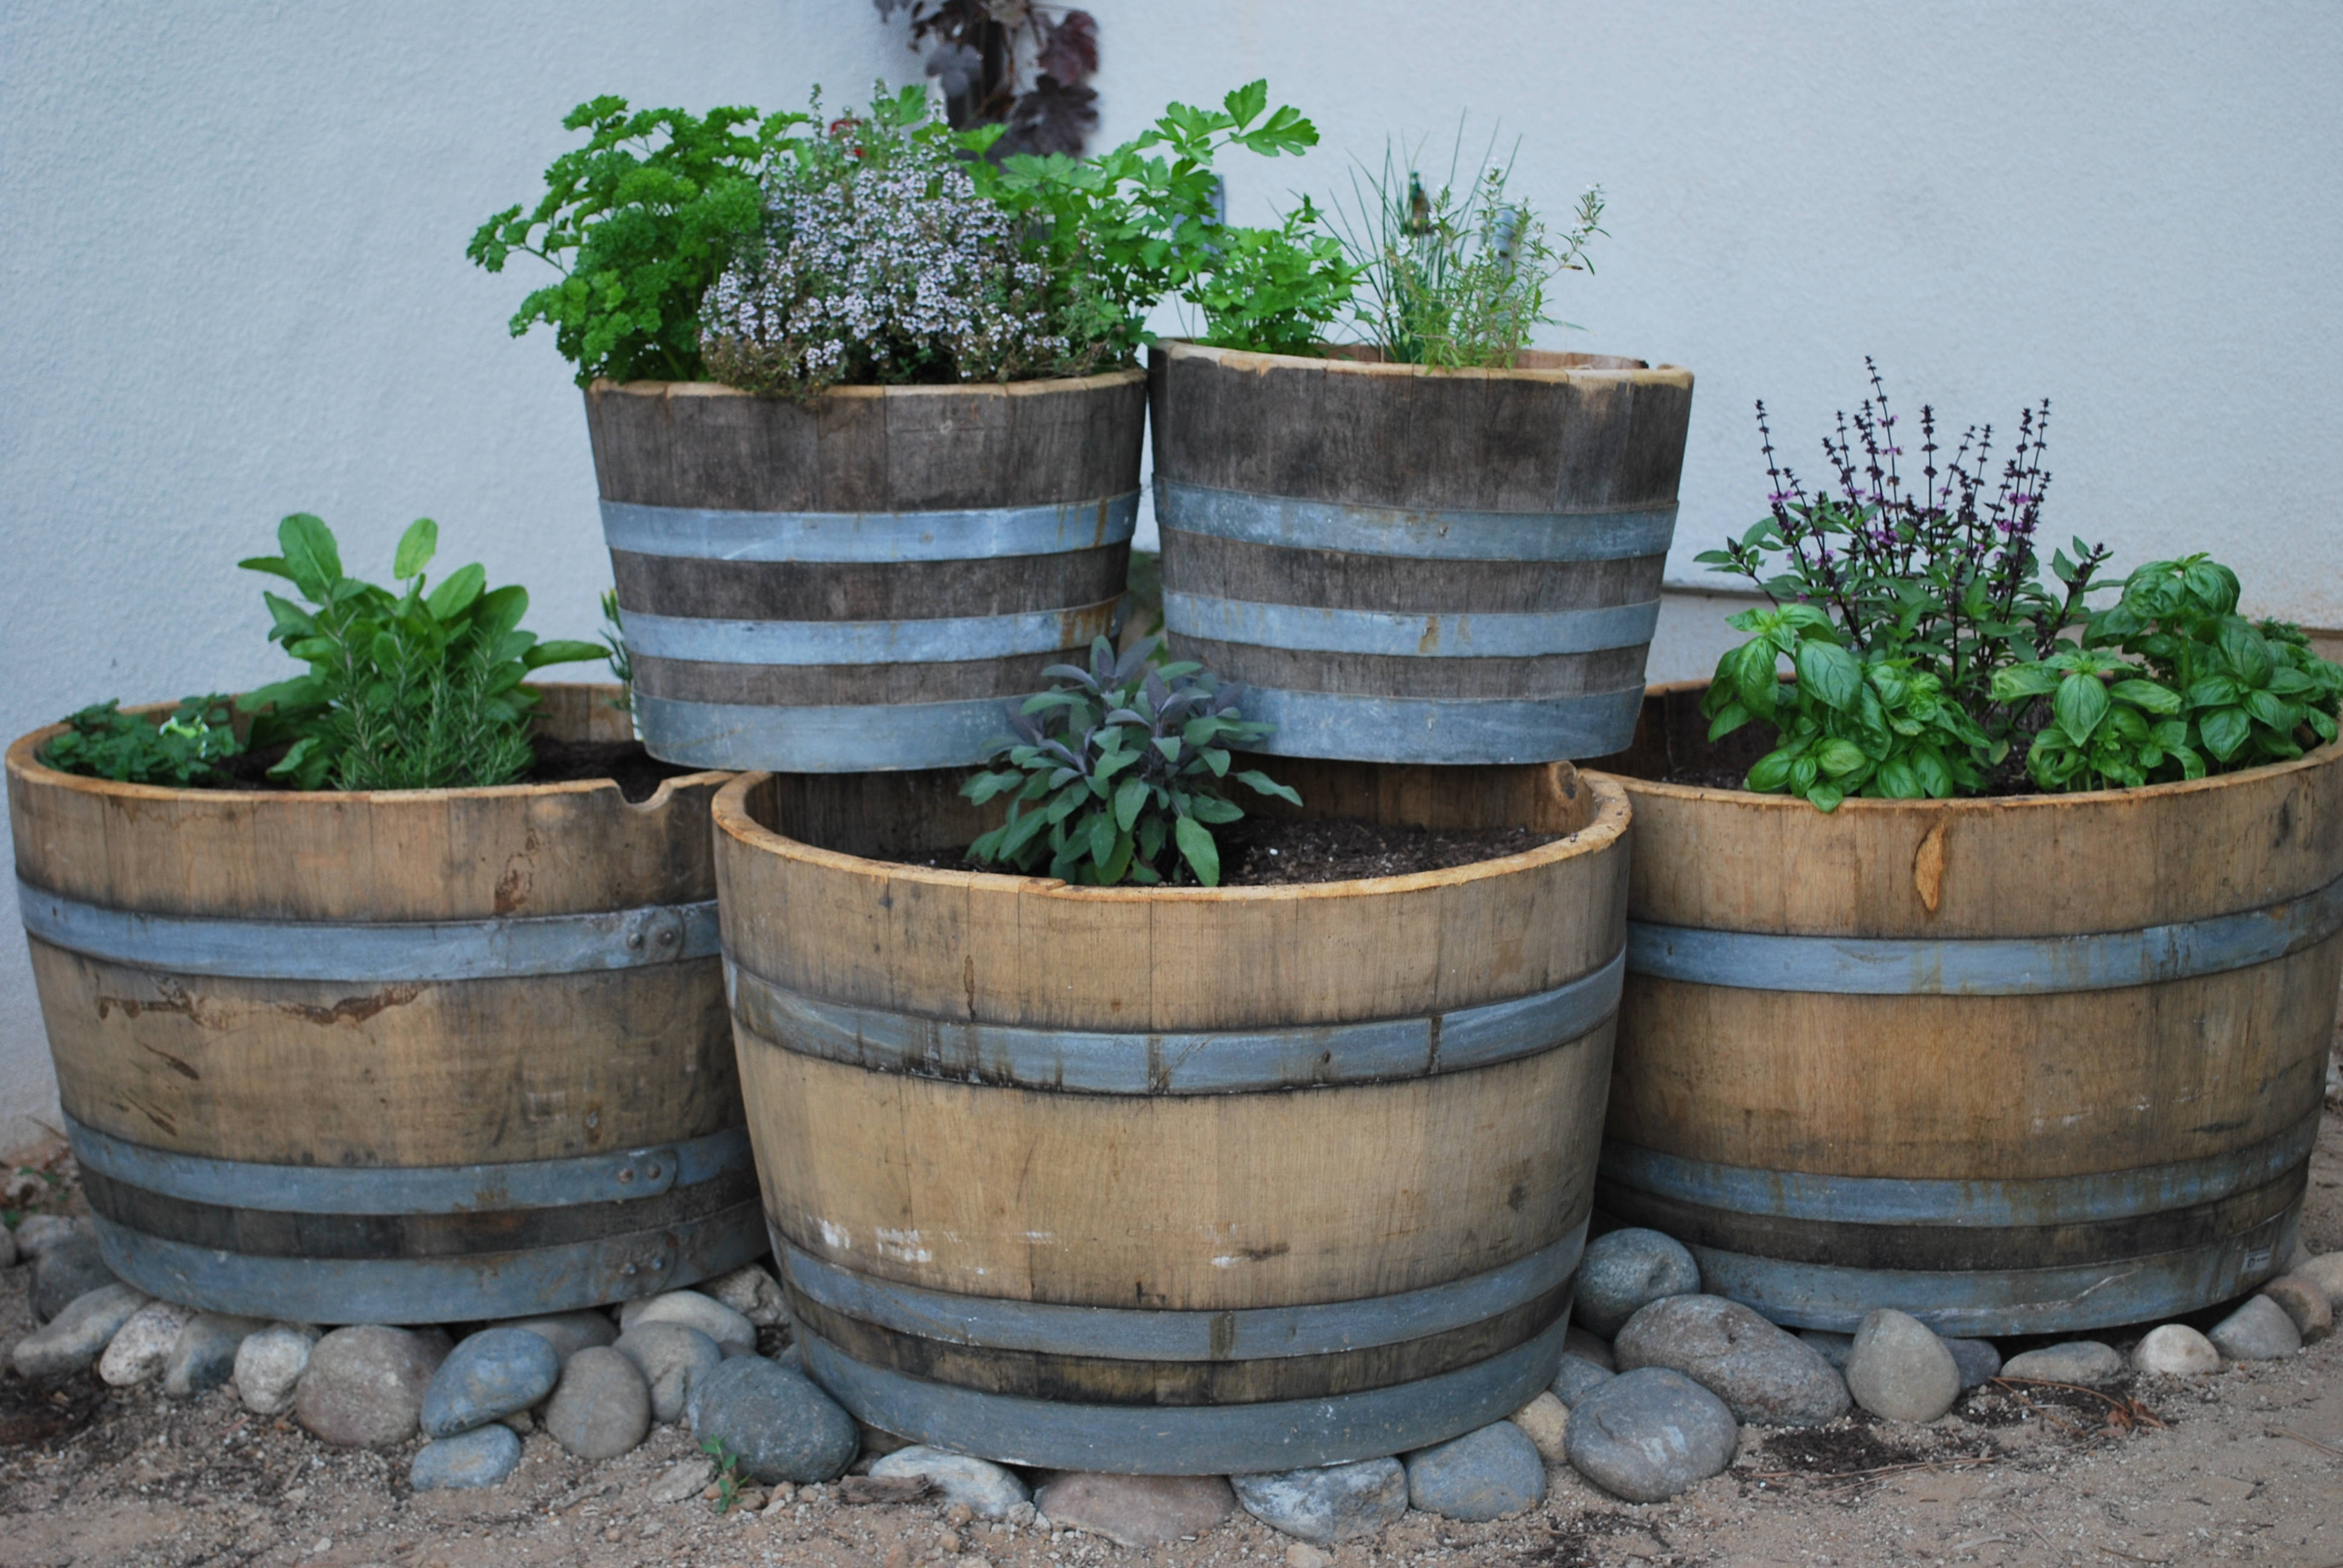 Have a Lawn and Eat Too The Edible Backyard Barrel Garden